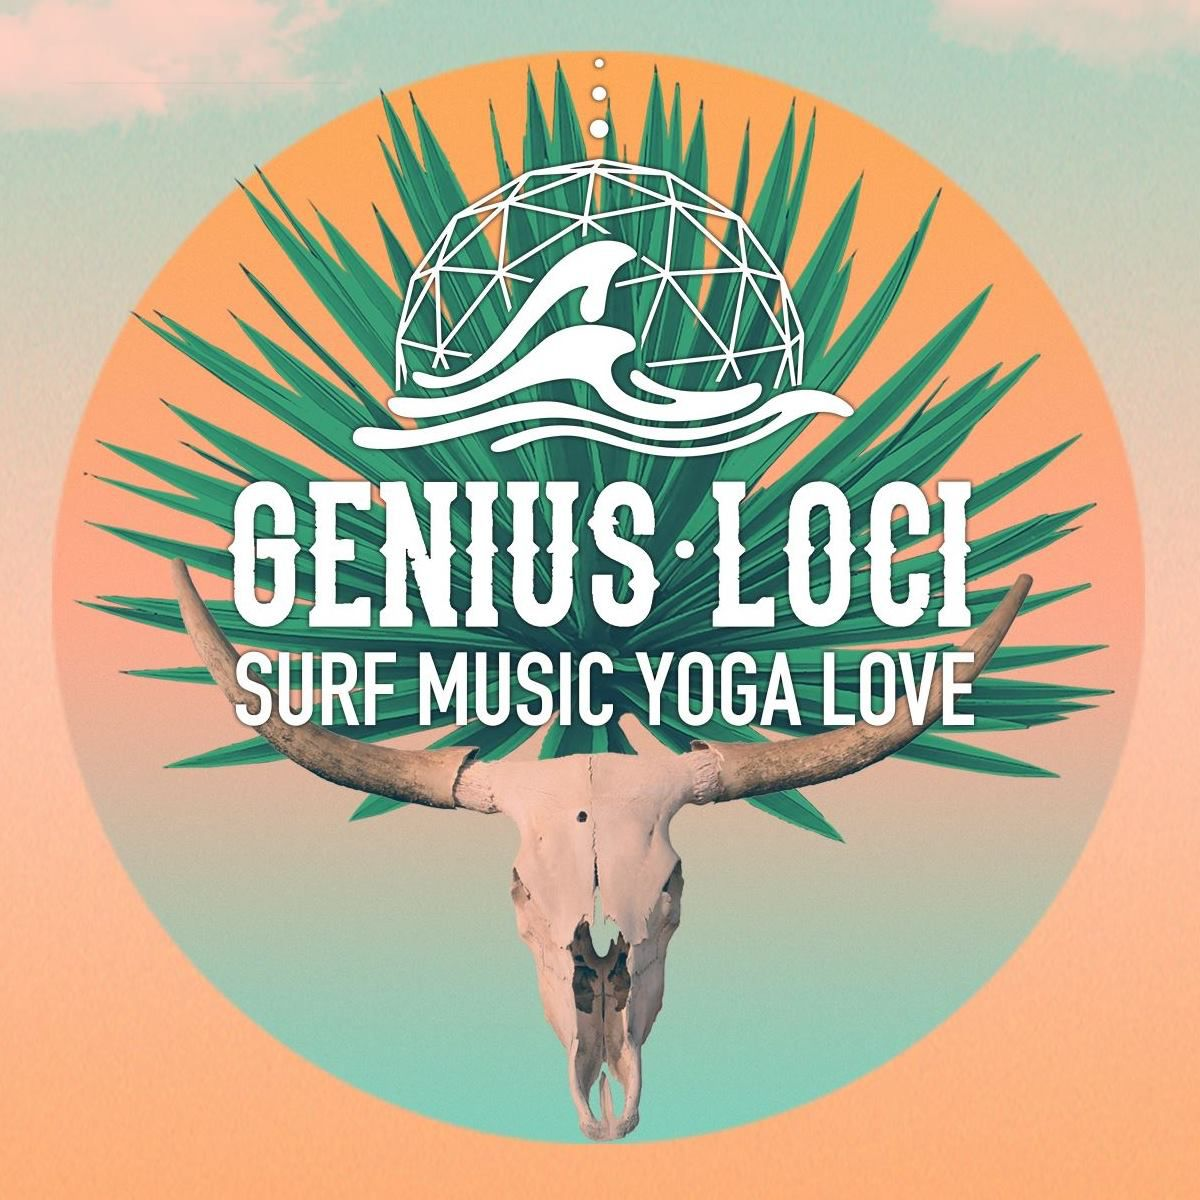 Genius Loci - Mexico Music Festivals 2020